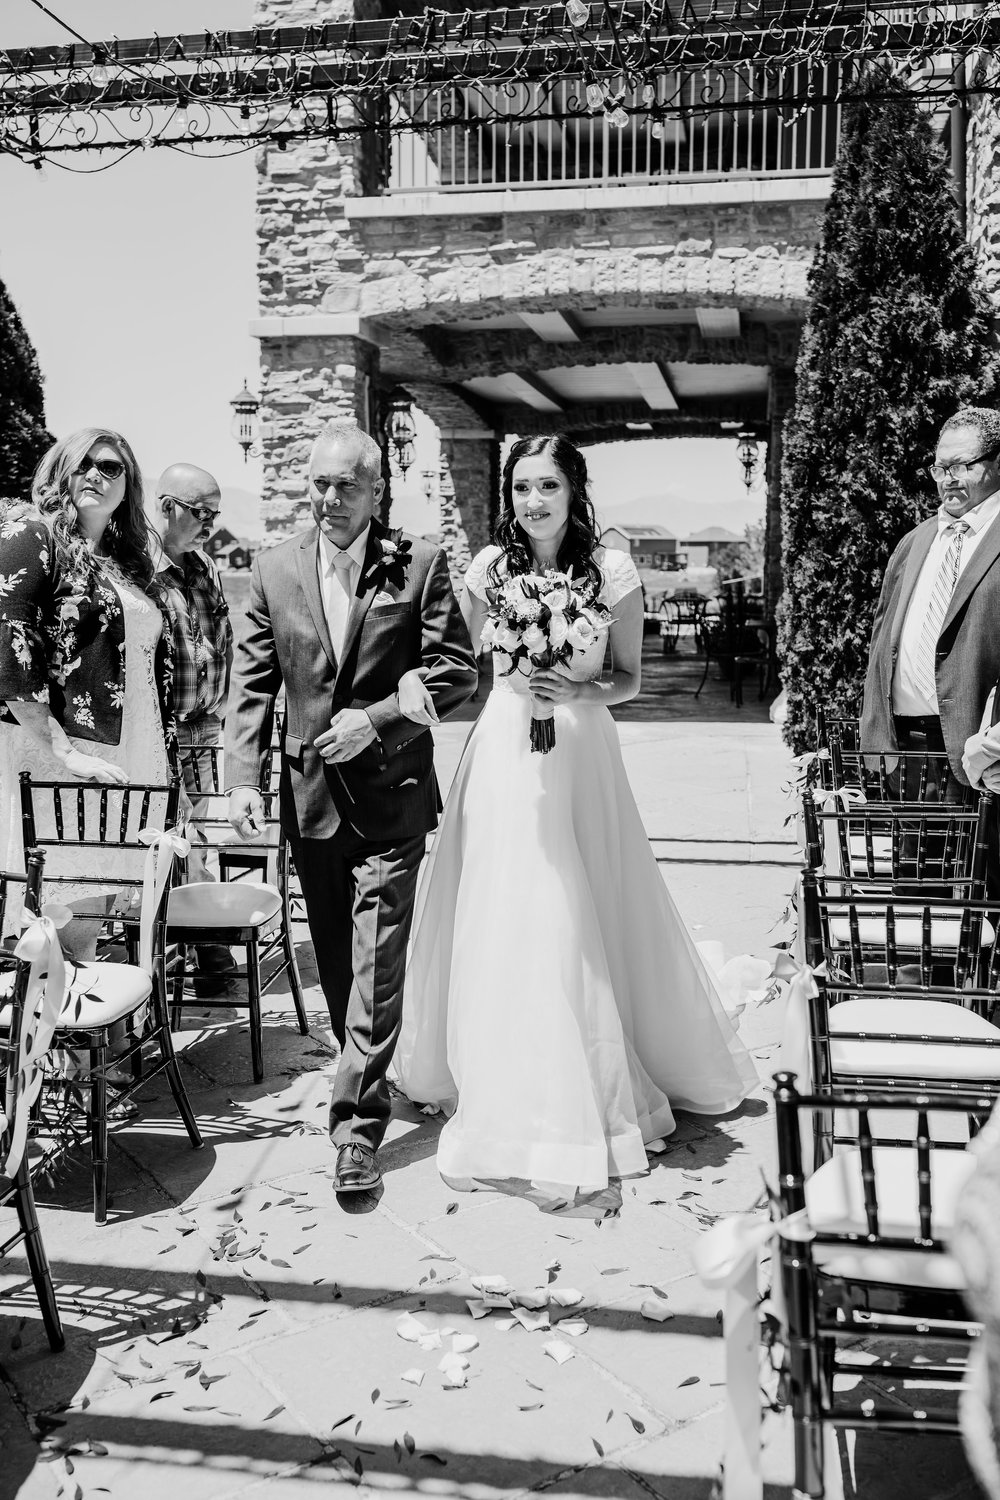 orem utah bride being walked down the aisle on wedding day black and white wedding photographer calli richards sleepy ridge golf course